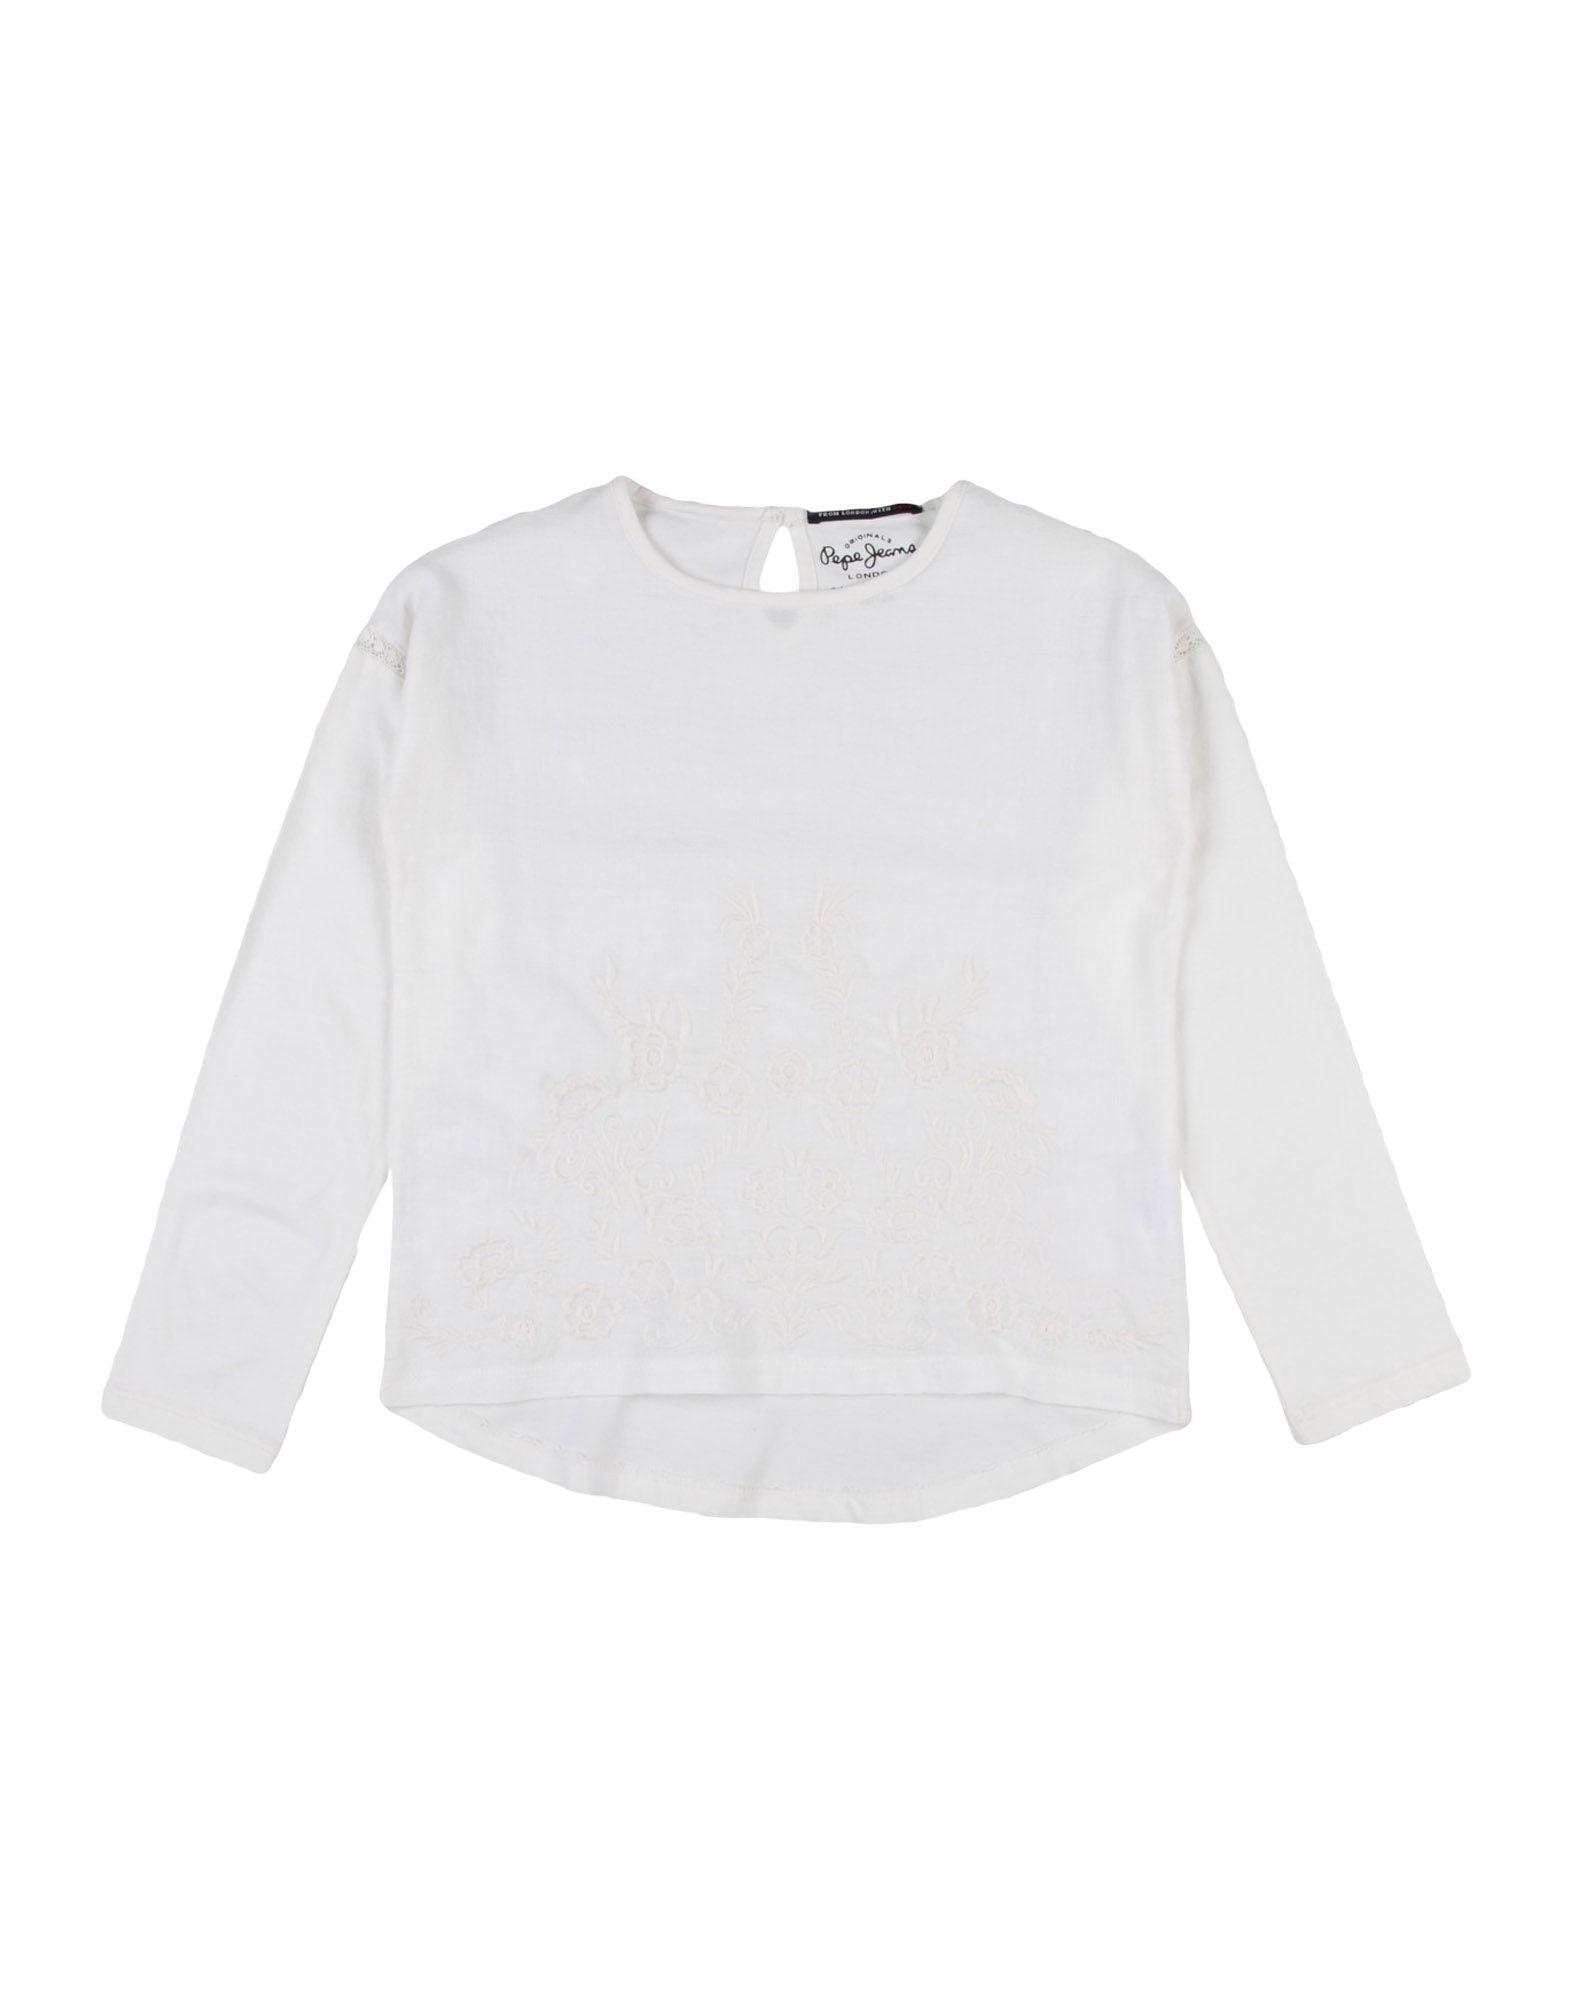 PEPE JEANS   PEPE JEANS T-shirts   Goxip